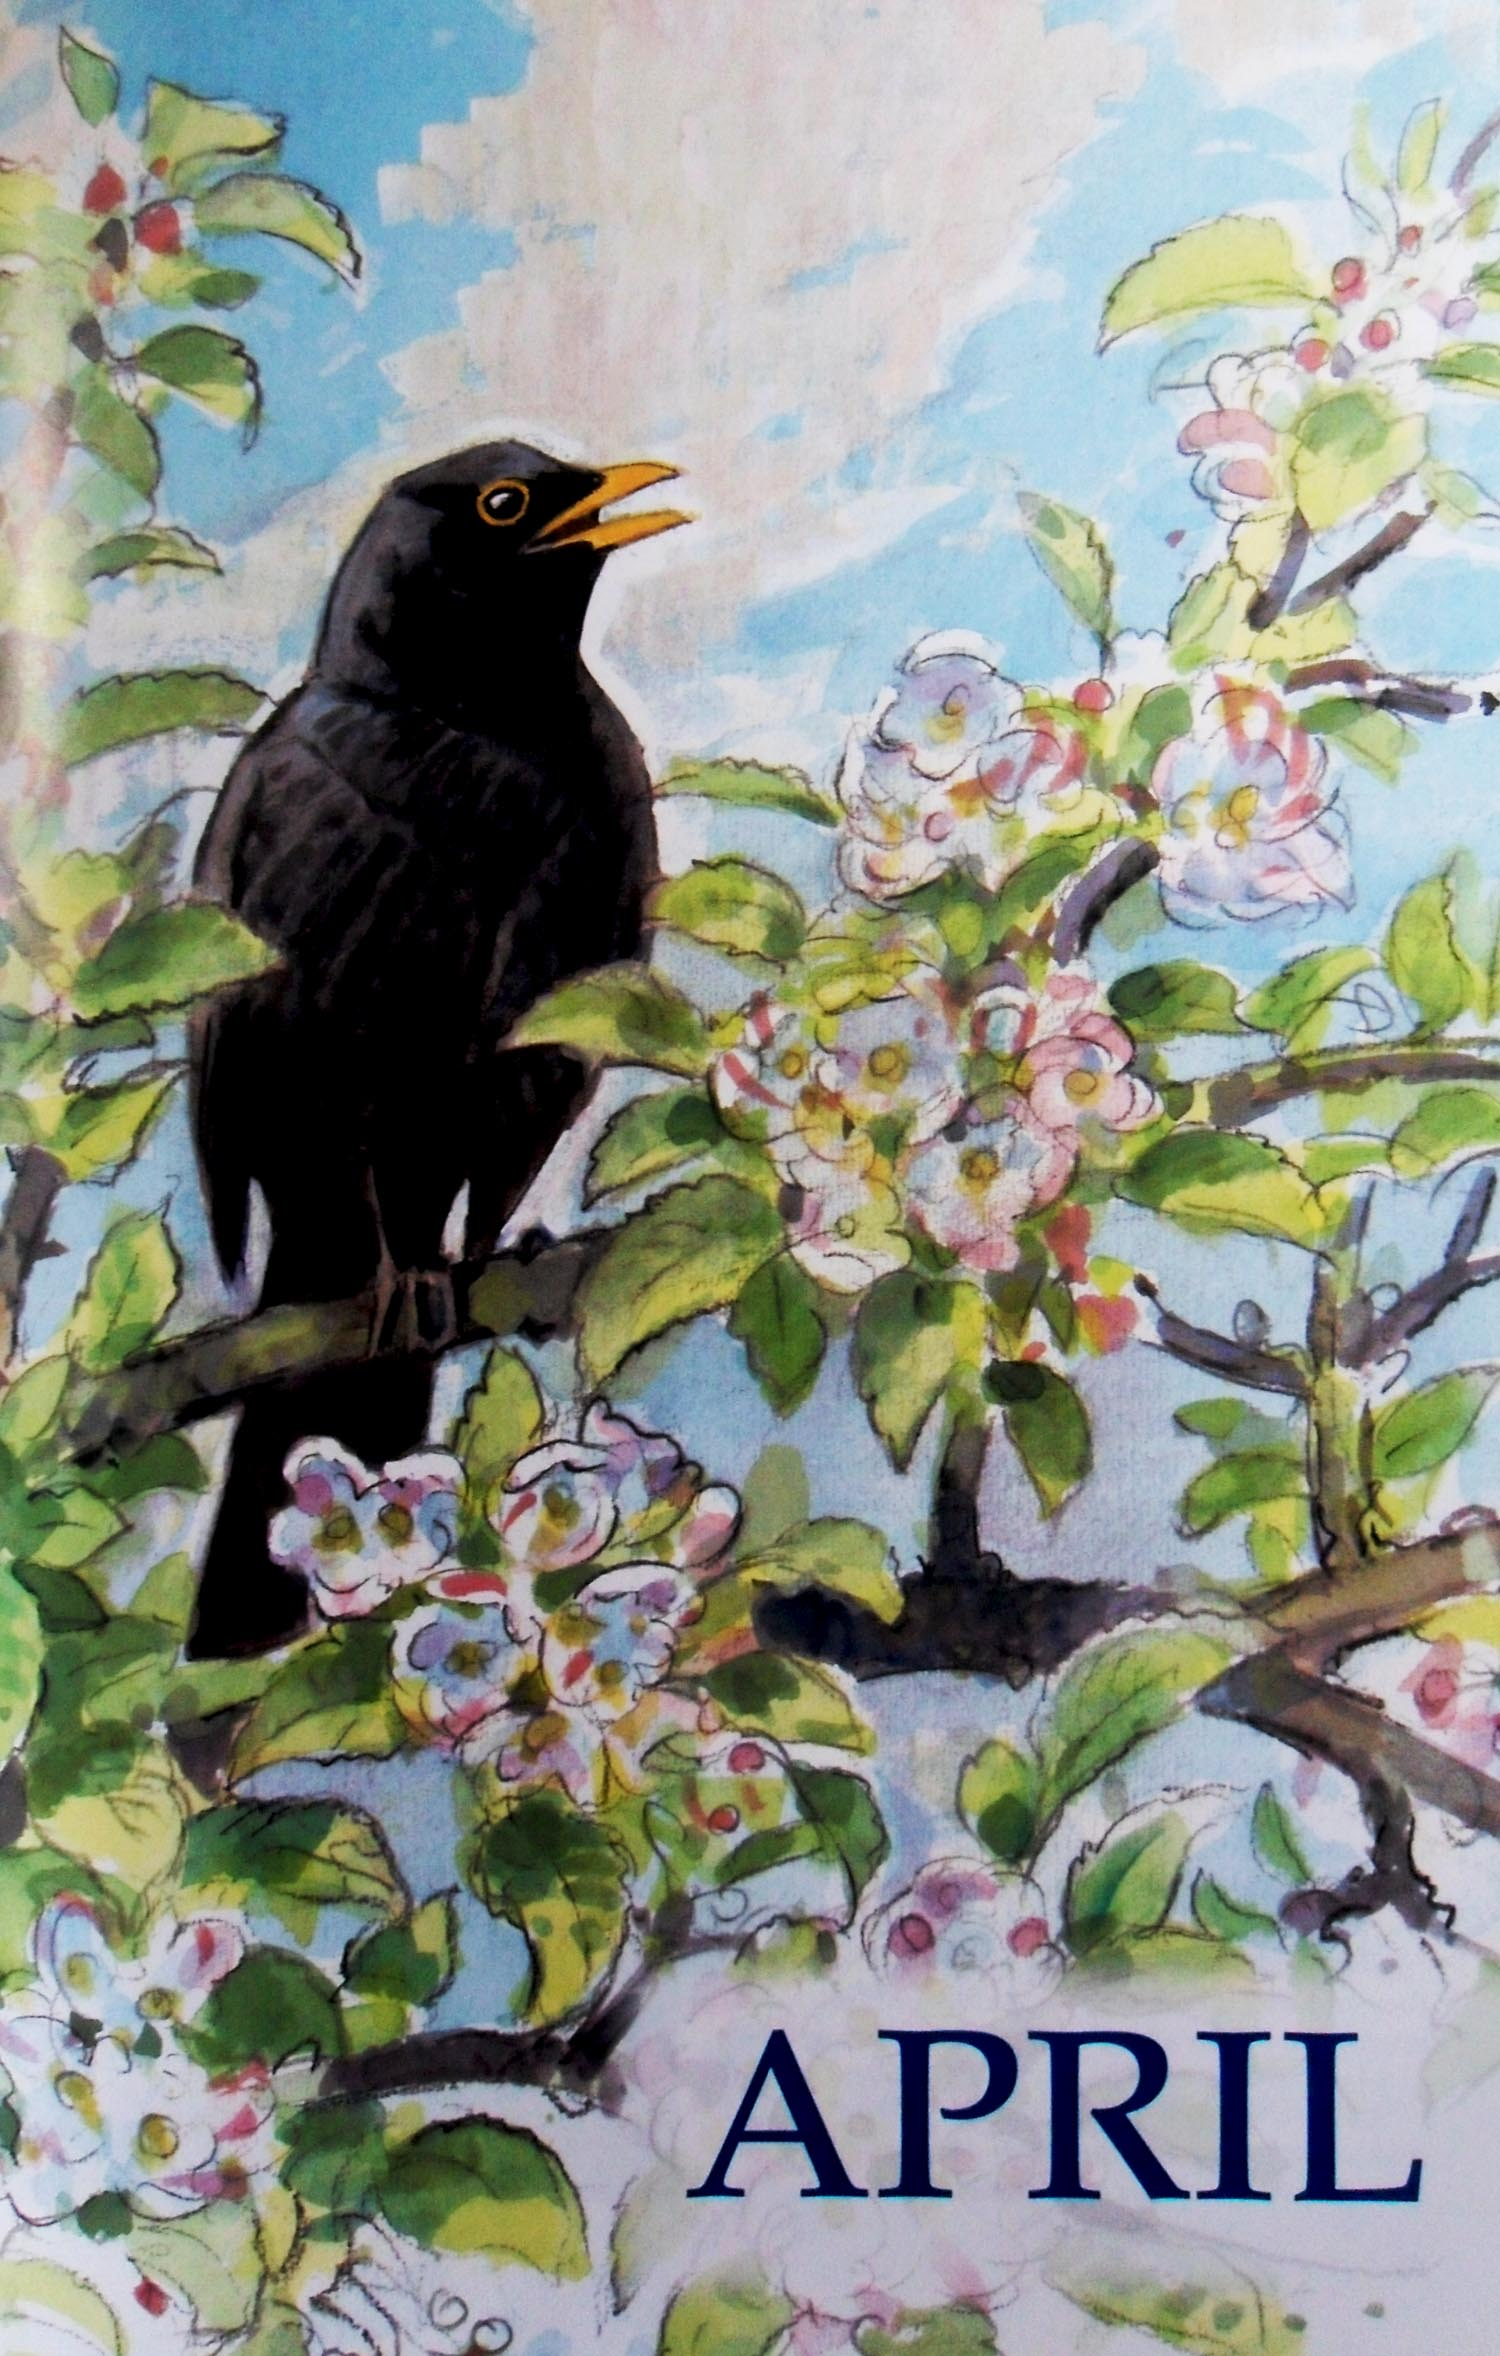 A blackbird in full song - April (original book illustration by Peter Partington)